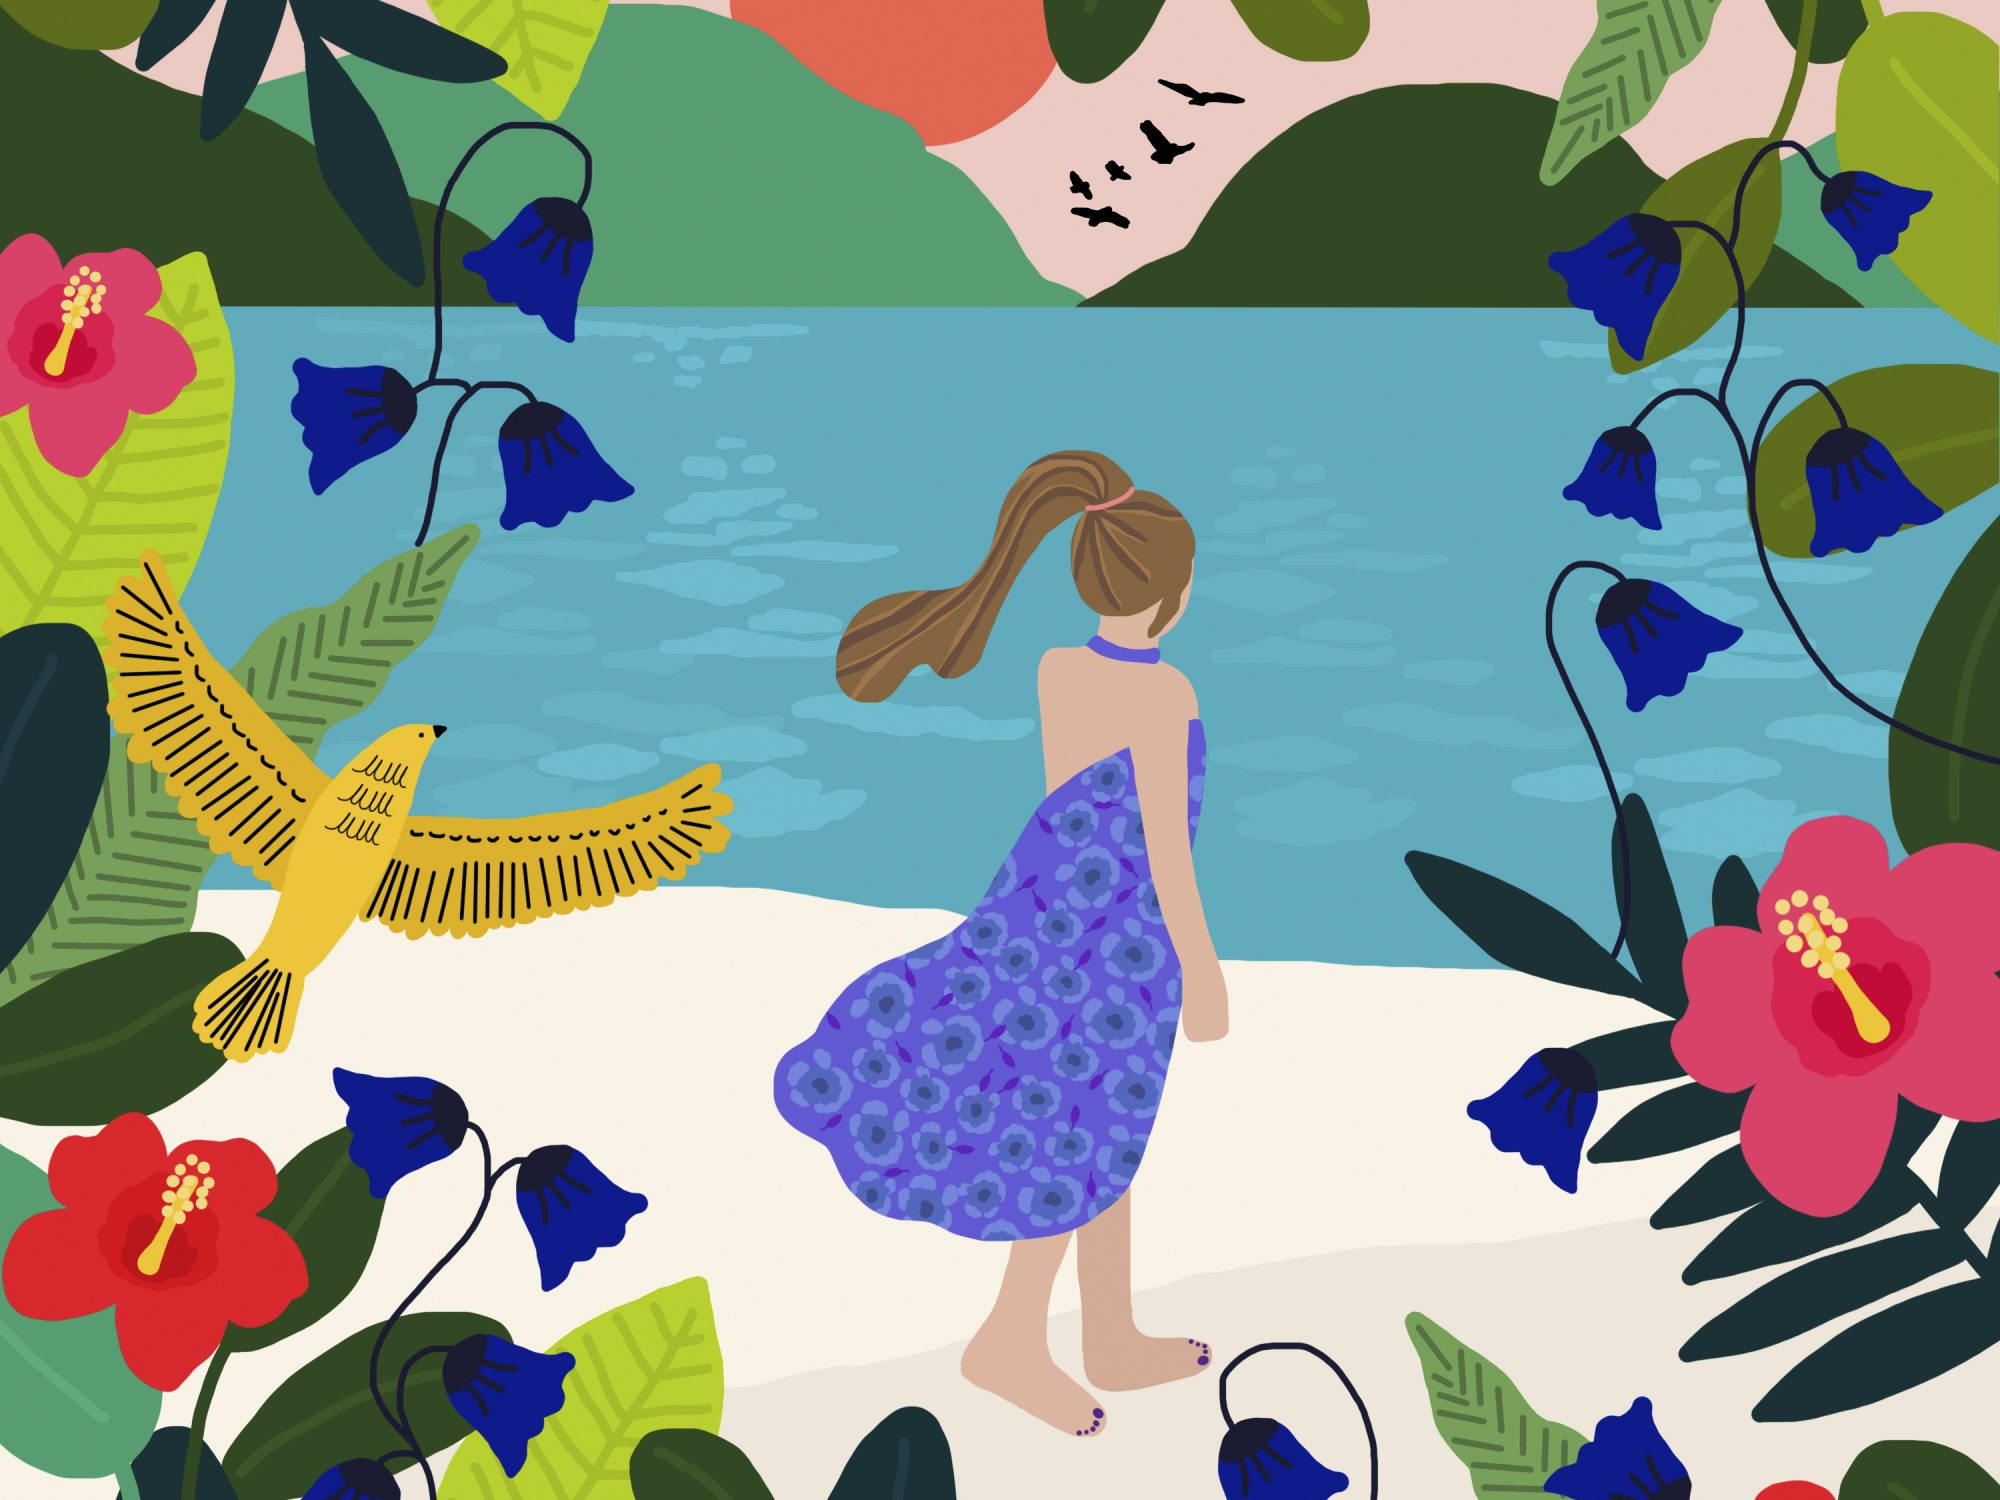 colorful illustration of a woman on a beach with birds and flowers